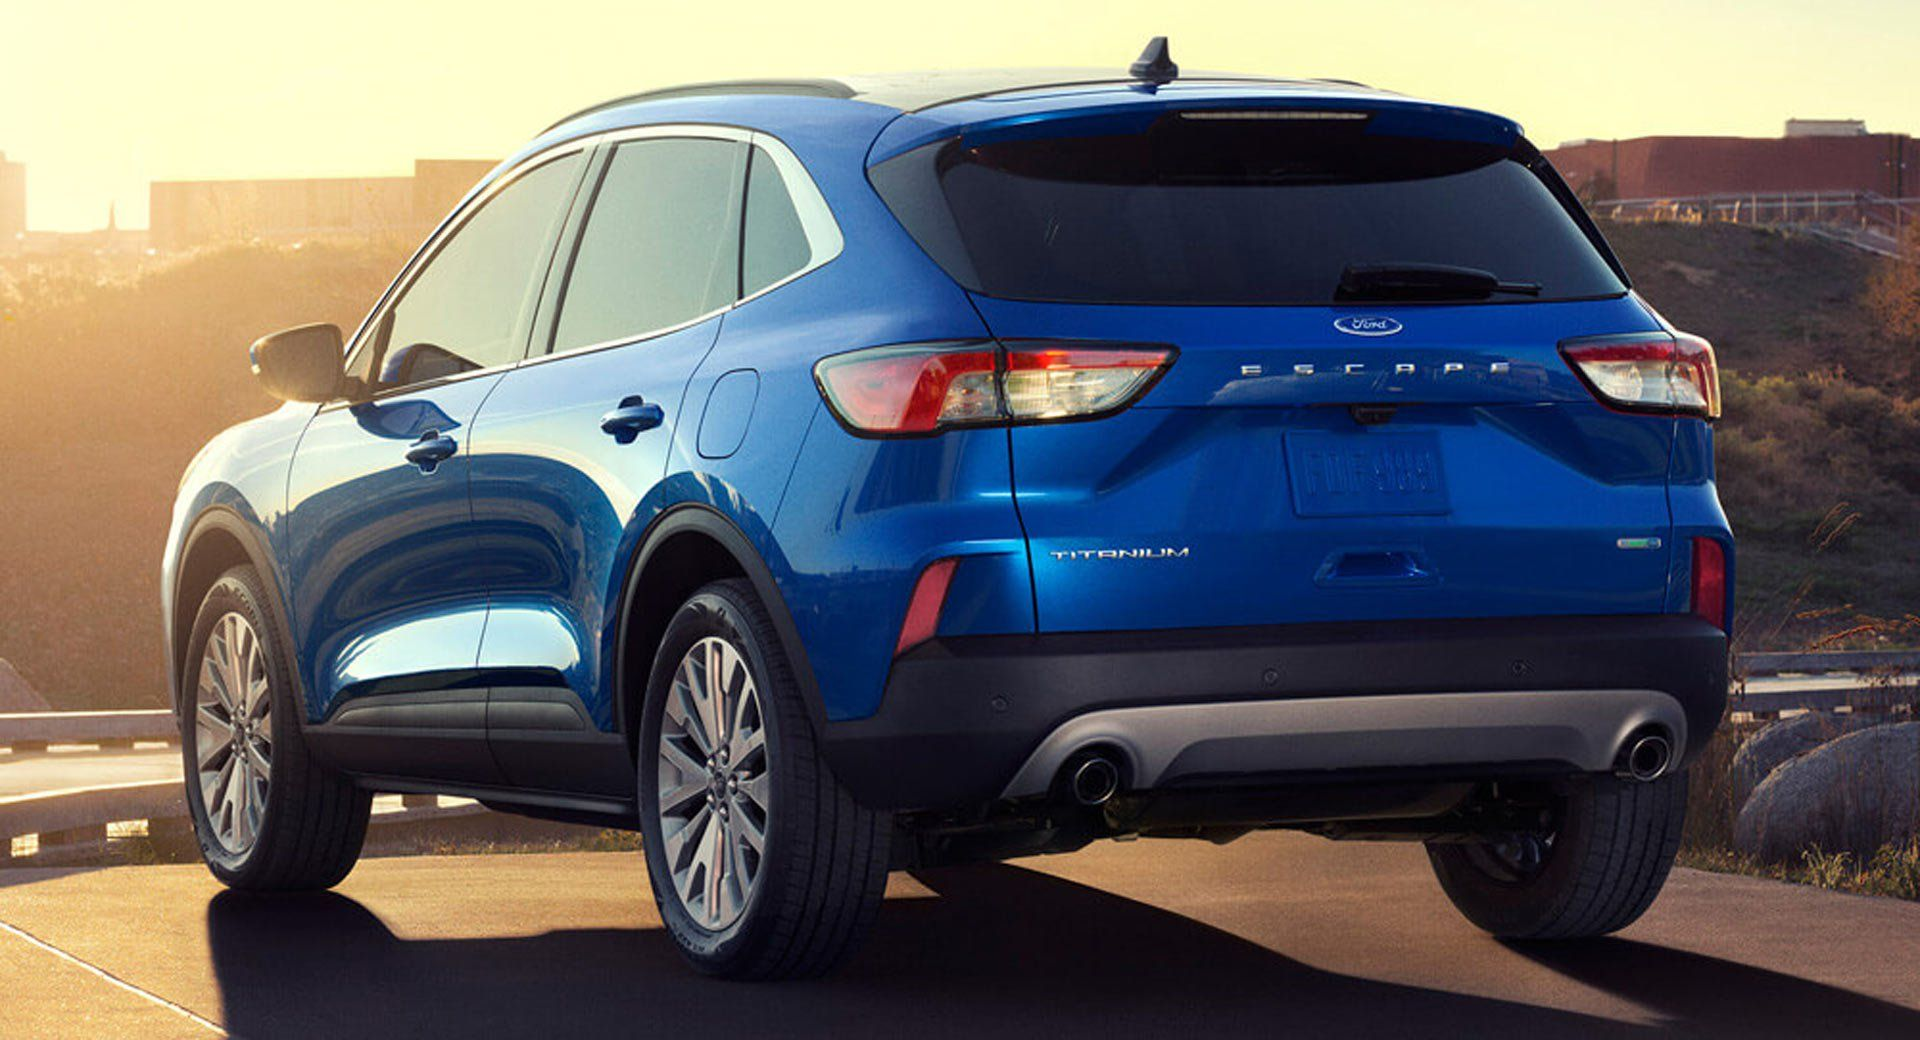 Designer Of 2020 Ford Escape Was Inspired By Bmw Motorcycles Ford